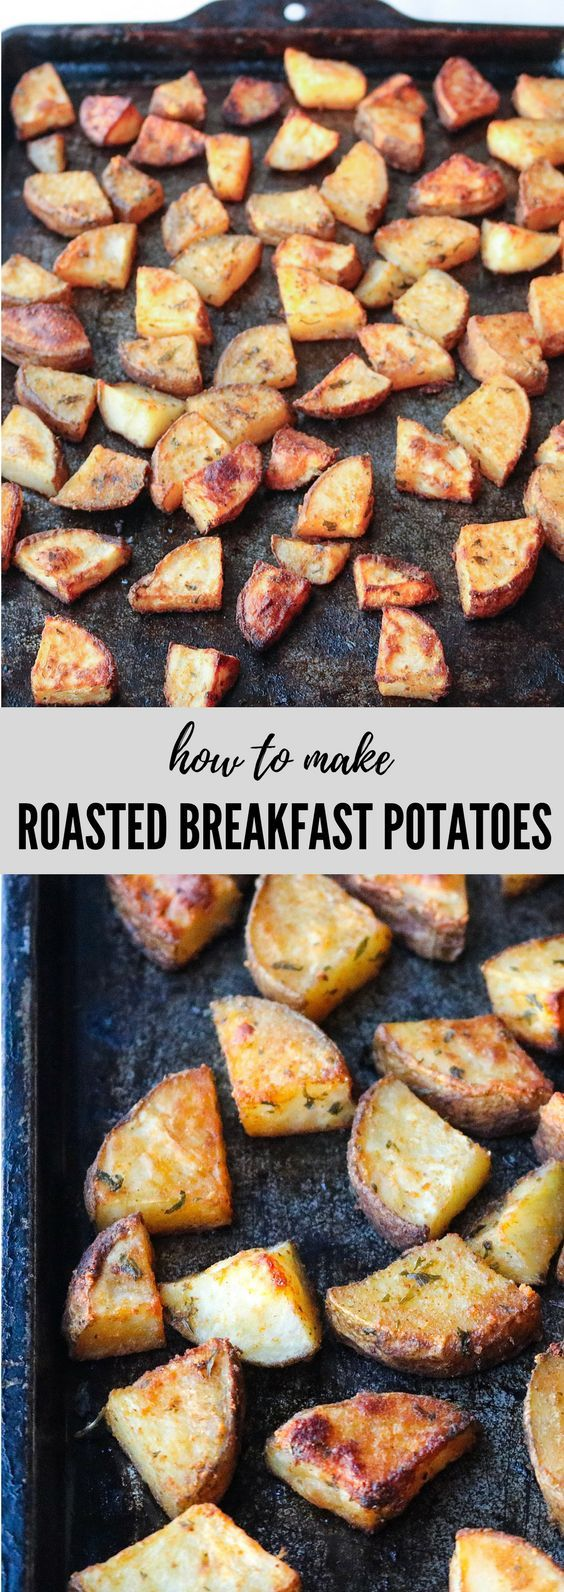 Whole30 Roasted Breakfast Potatoes images